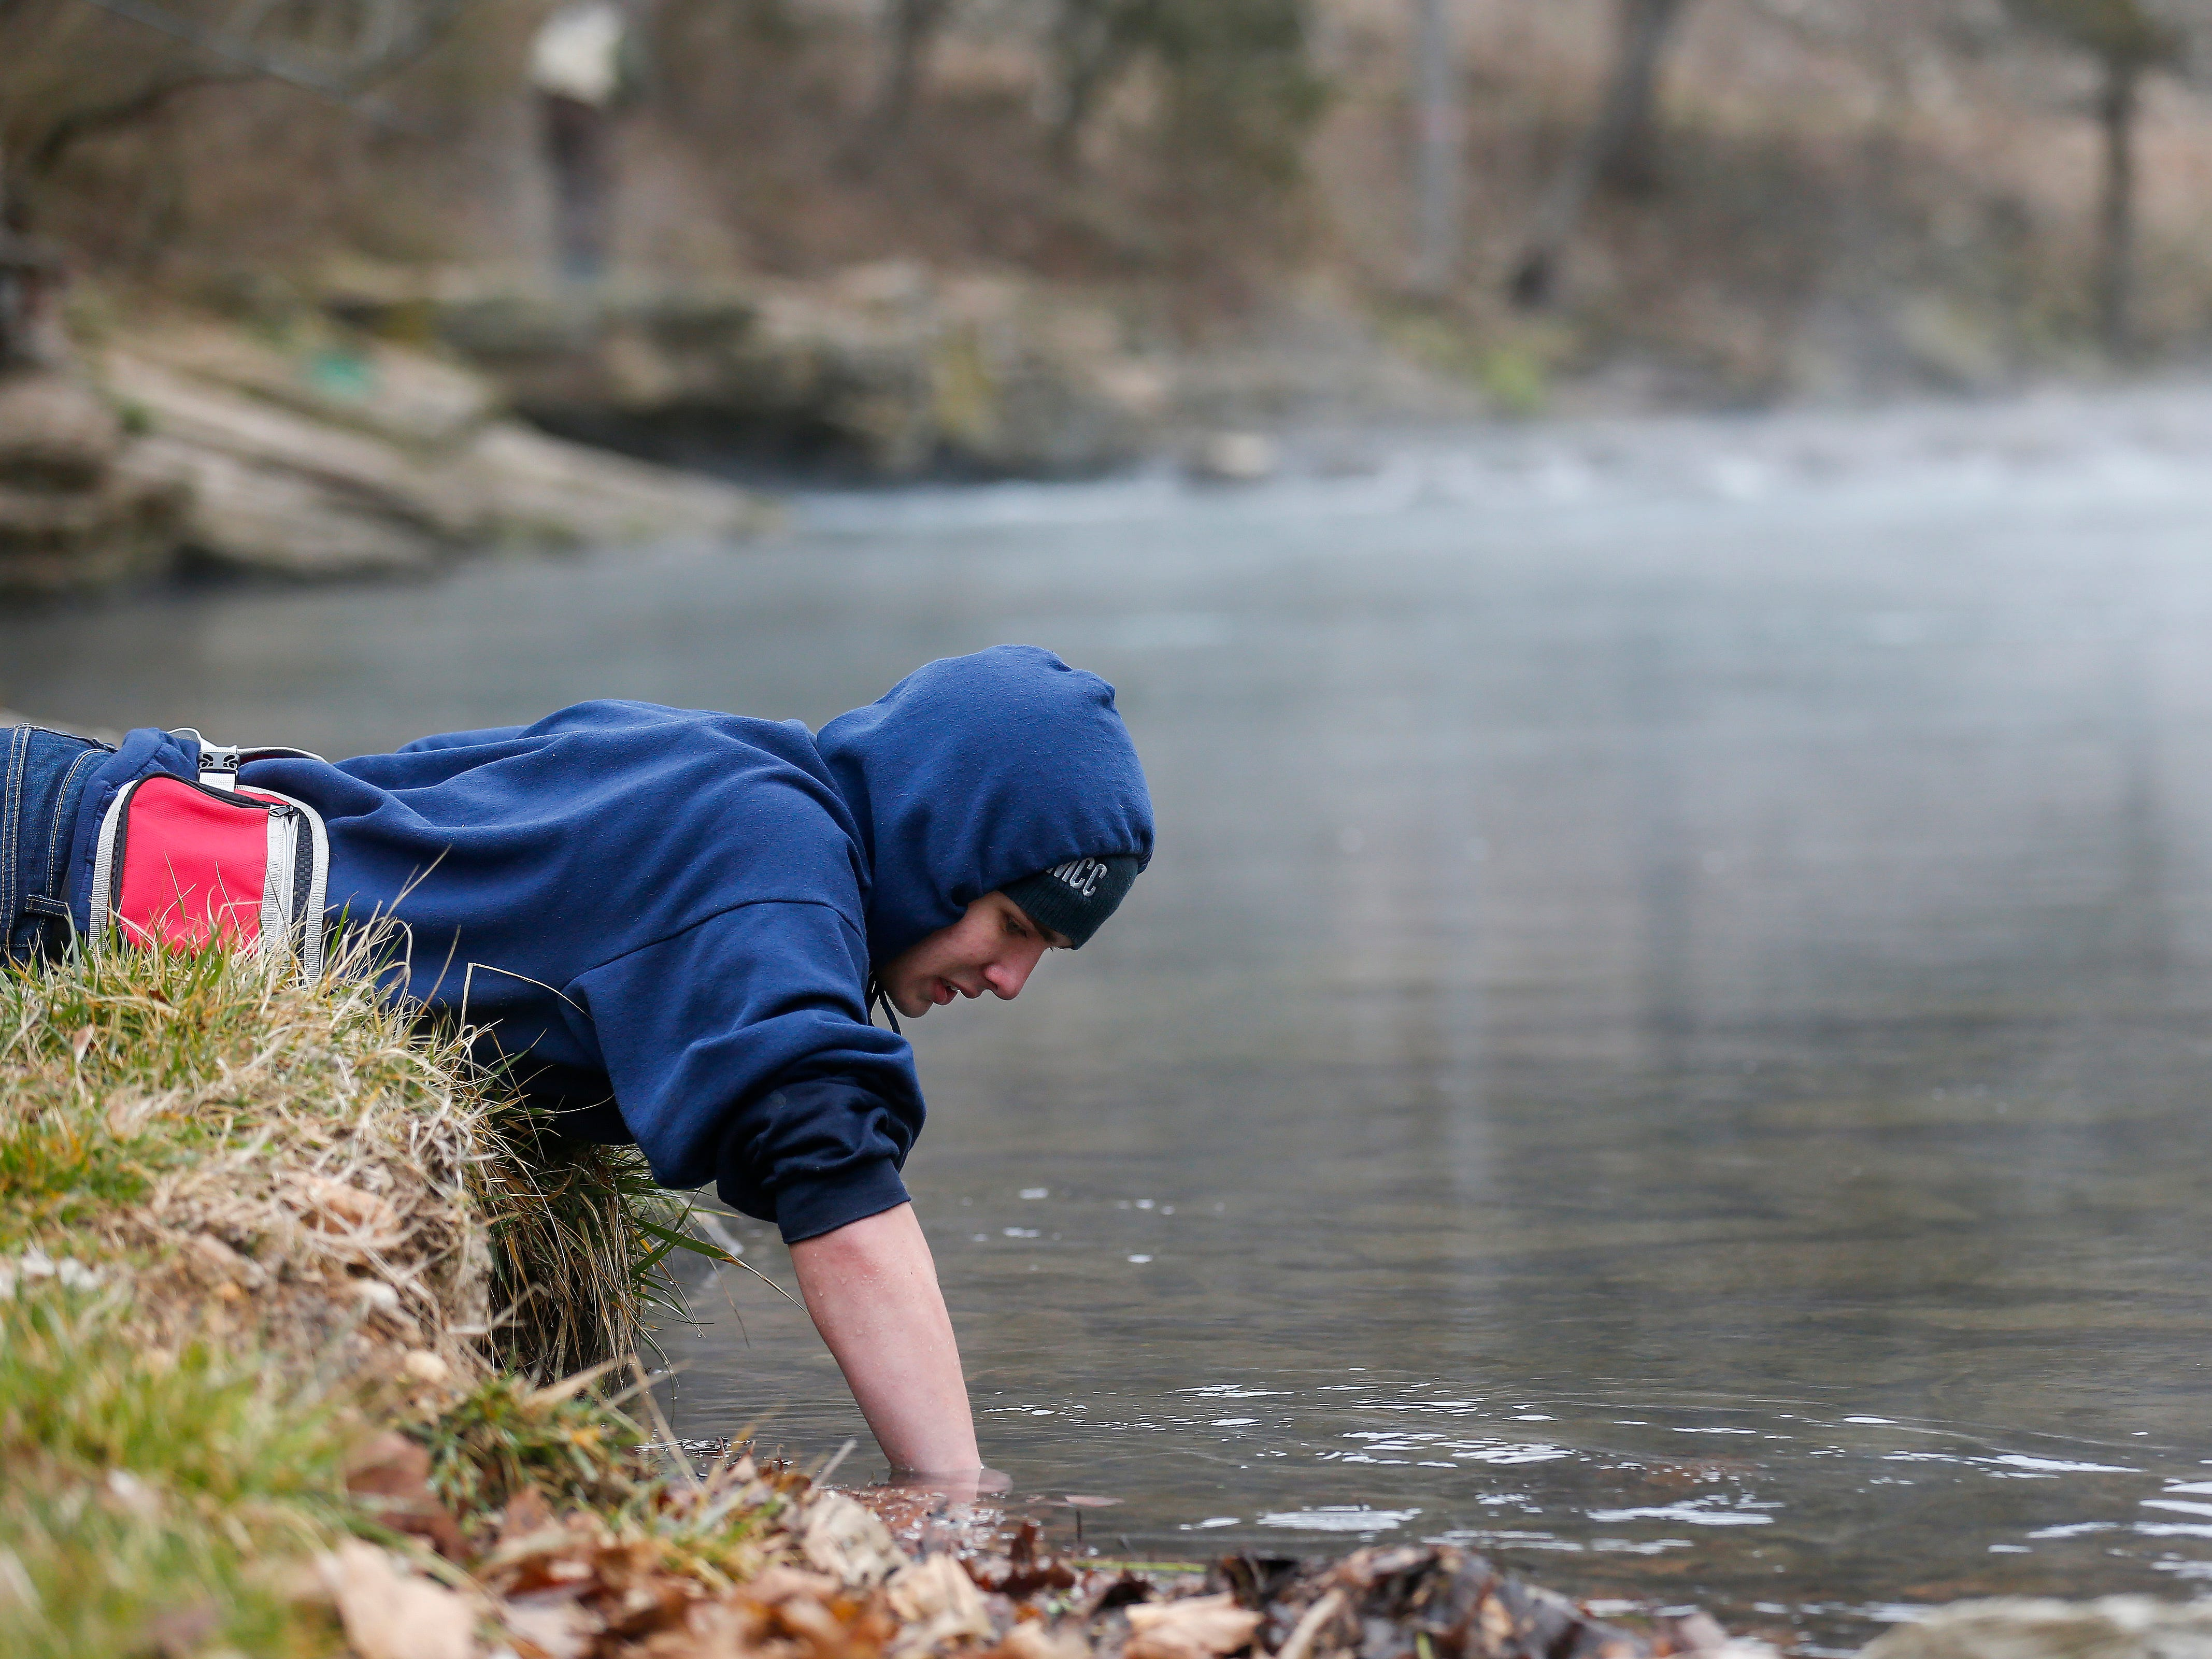 Riley Jones, of Pea Ridge, Arkansas, tries to grab a crawfish with his bare hand during opening day of trout season at Roaring River State Park on Friday, Mar. 1, 2019.